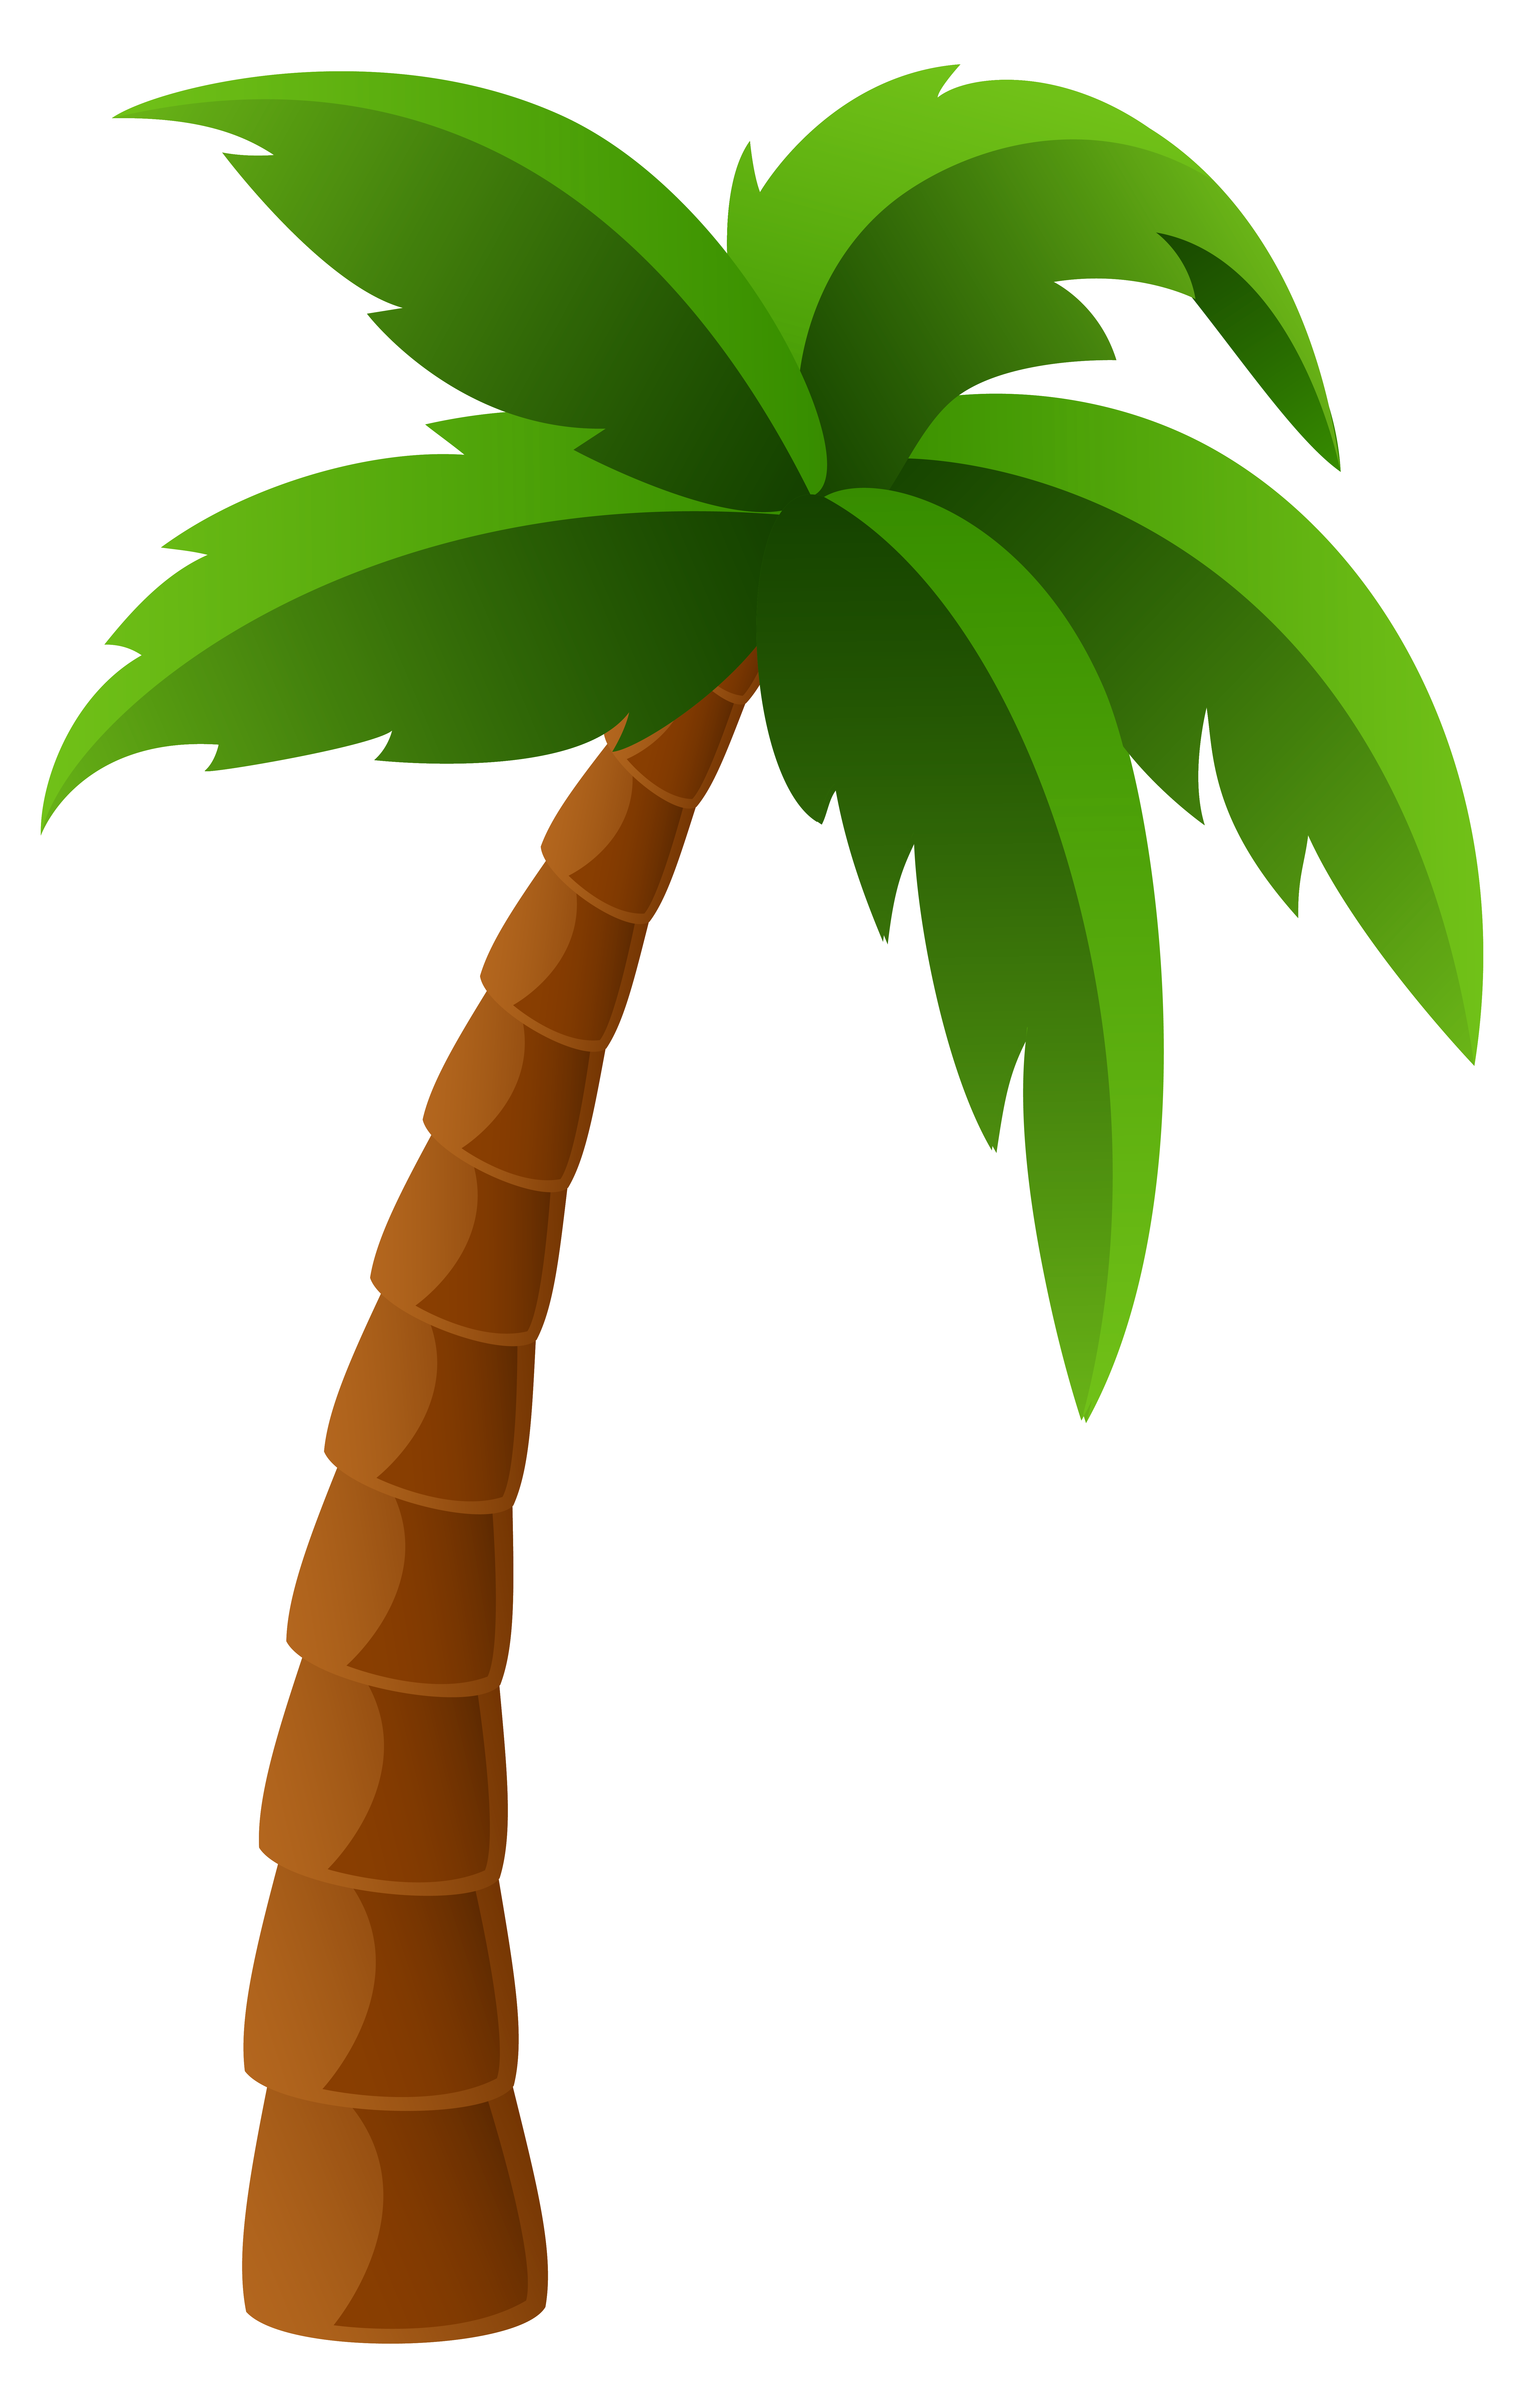 Clipart of a palm tree - ClipartFest